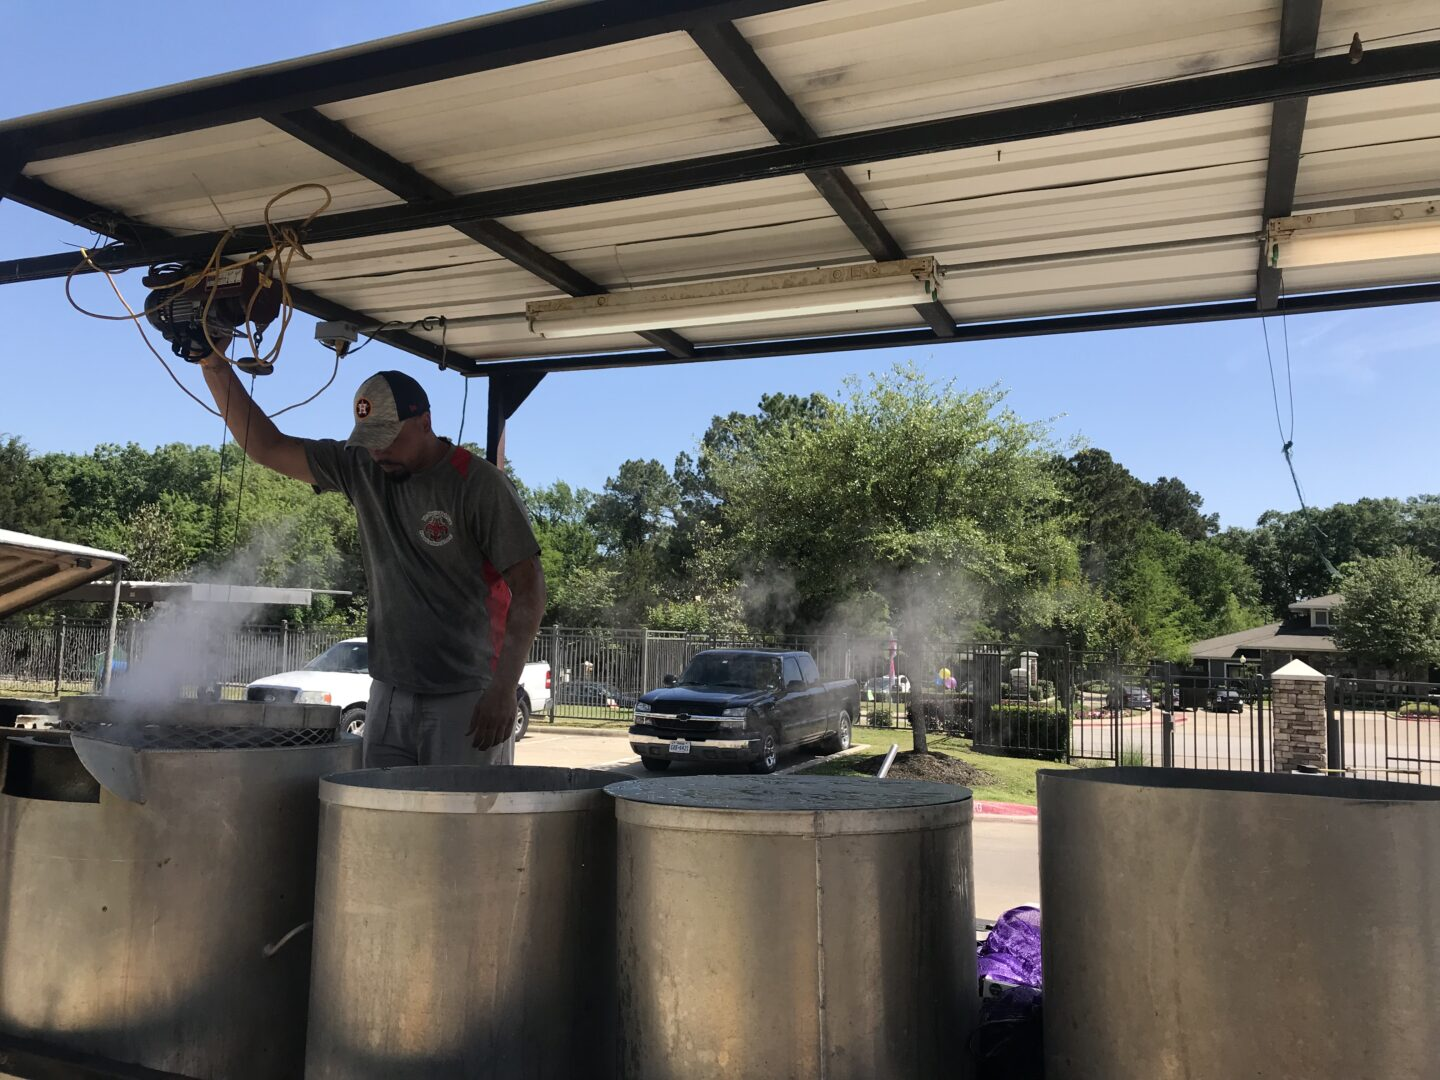 Big stainless pots used by The Crawfish Man